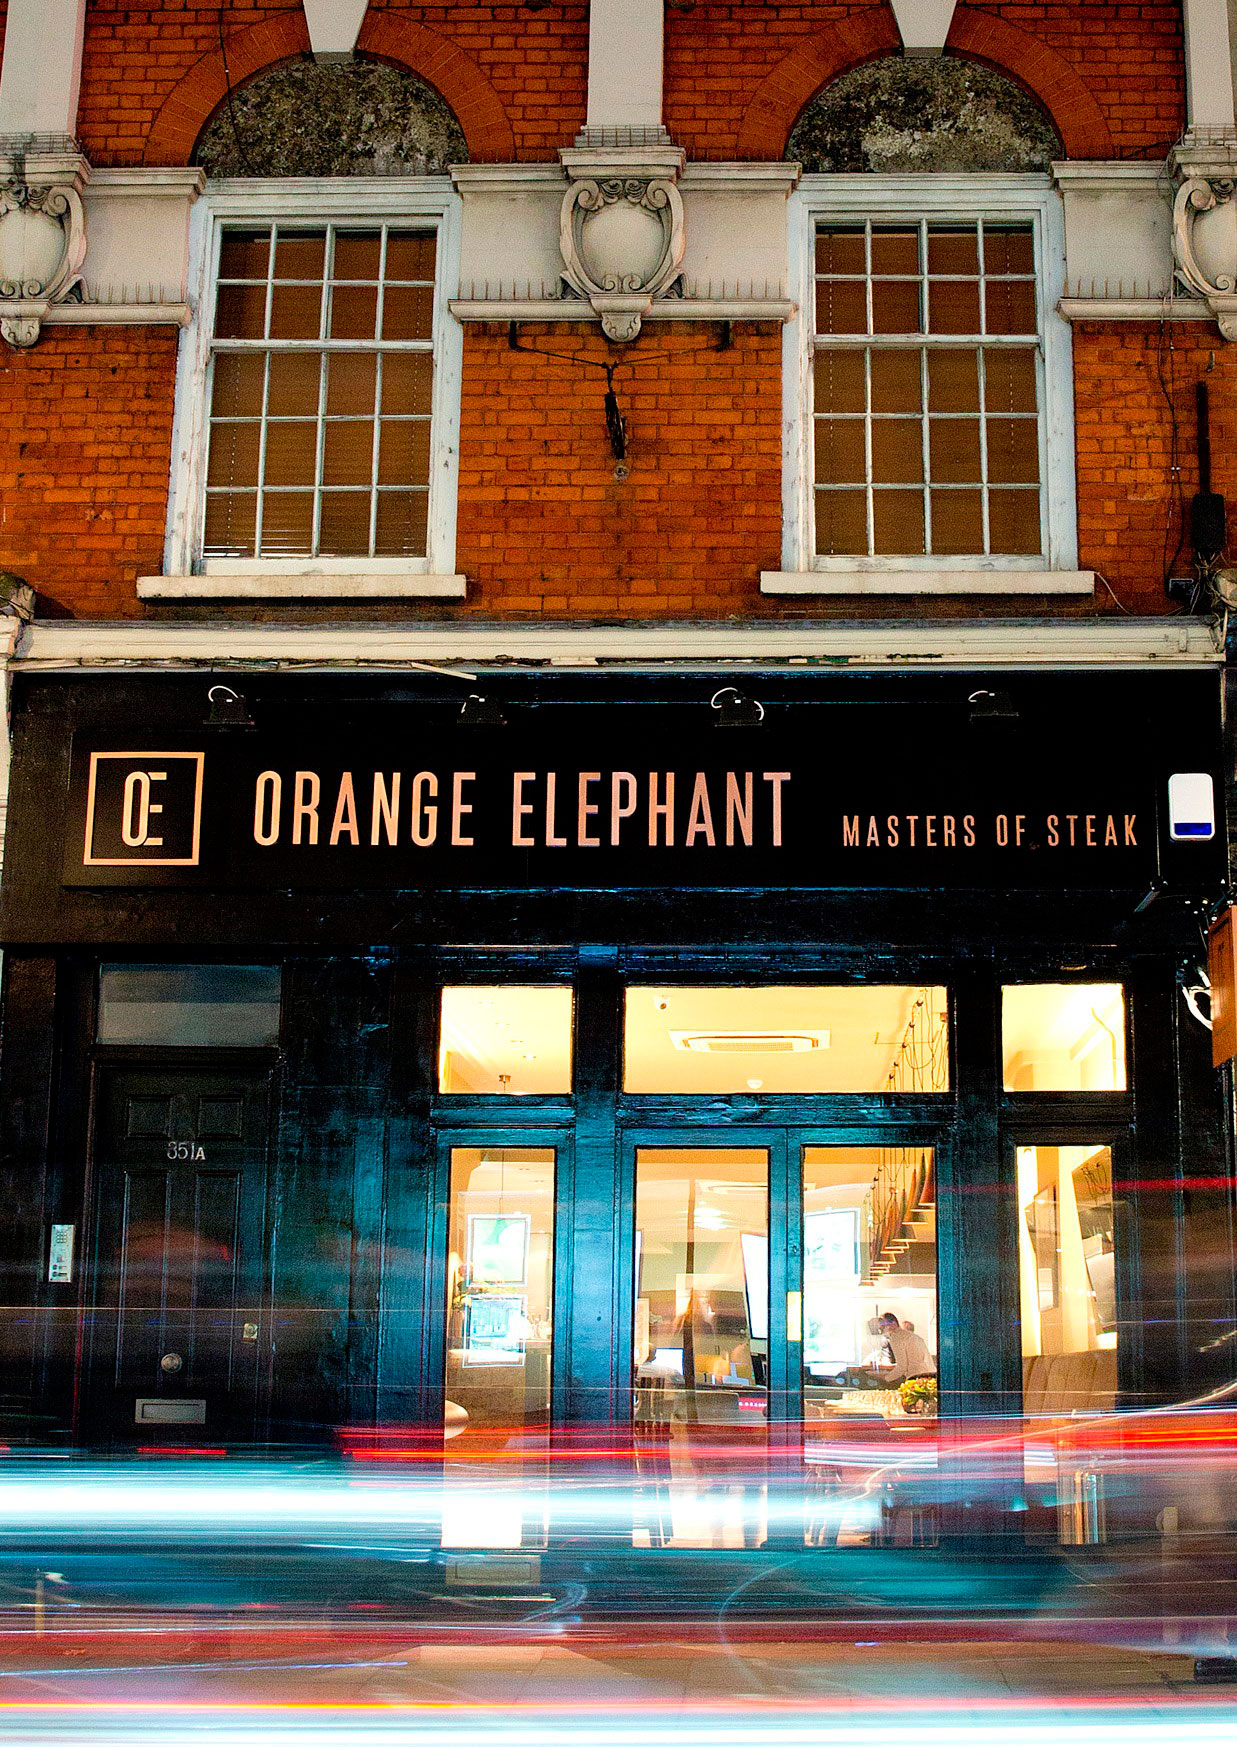 Orange Elephant is located at 351 Fulham Rd, London SW10 9TW